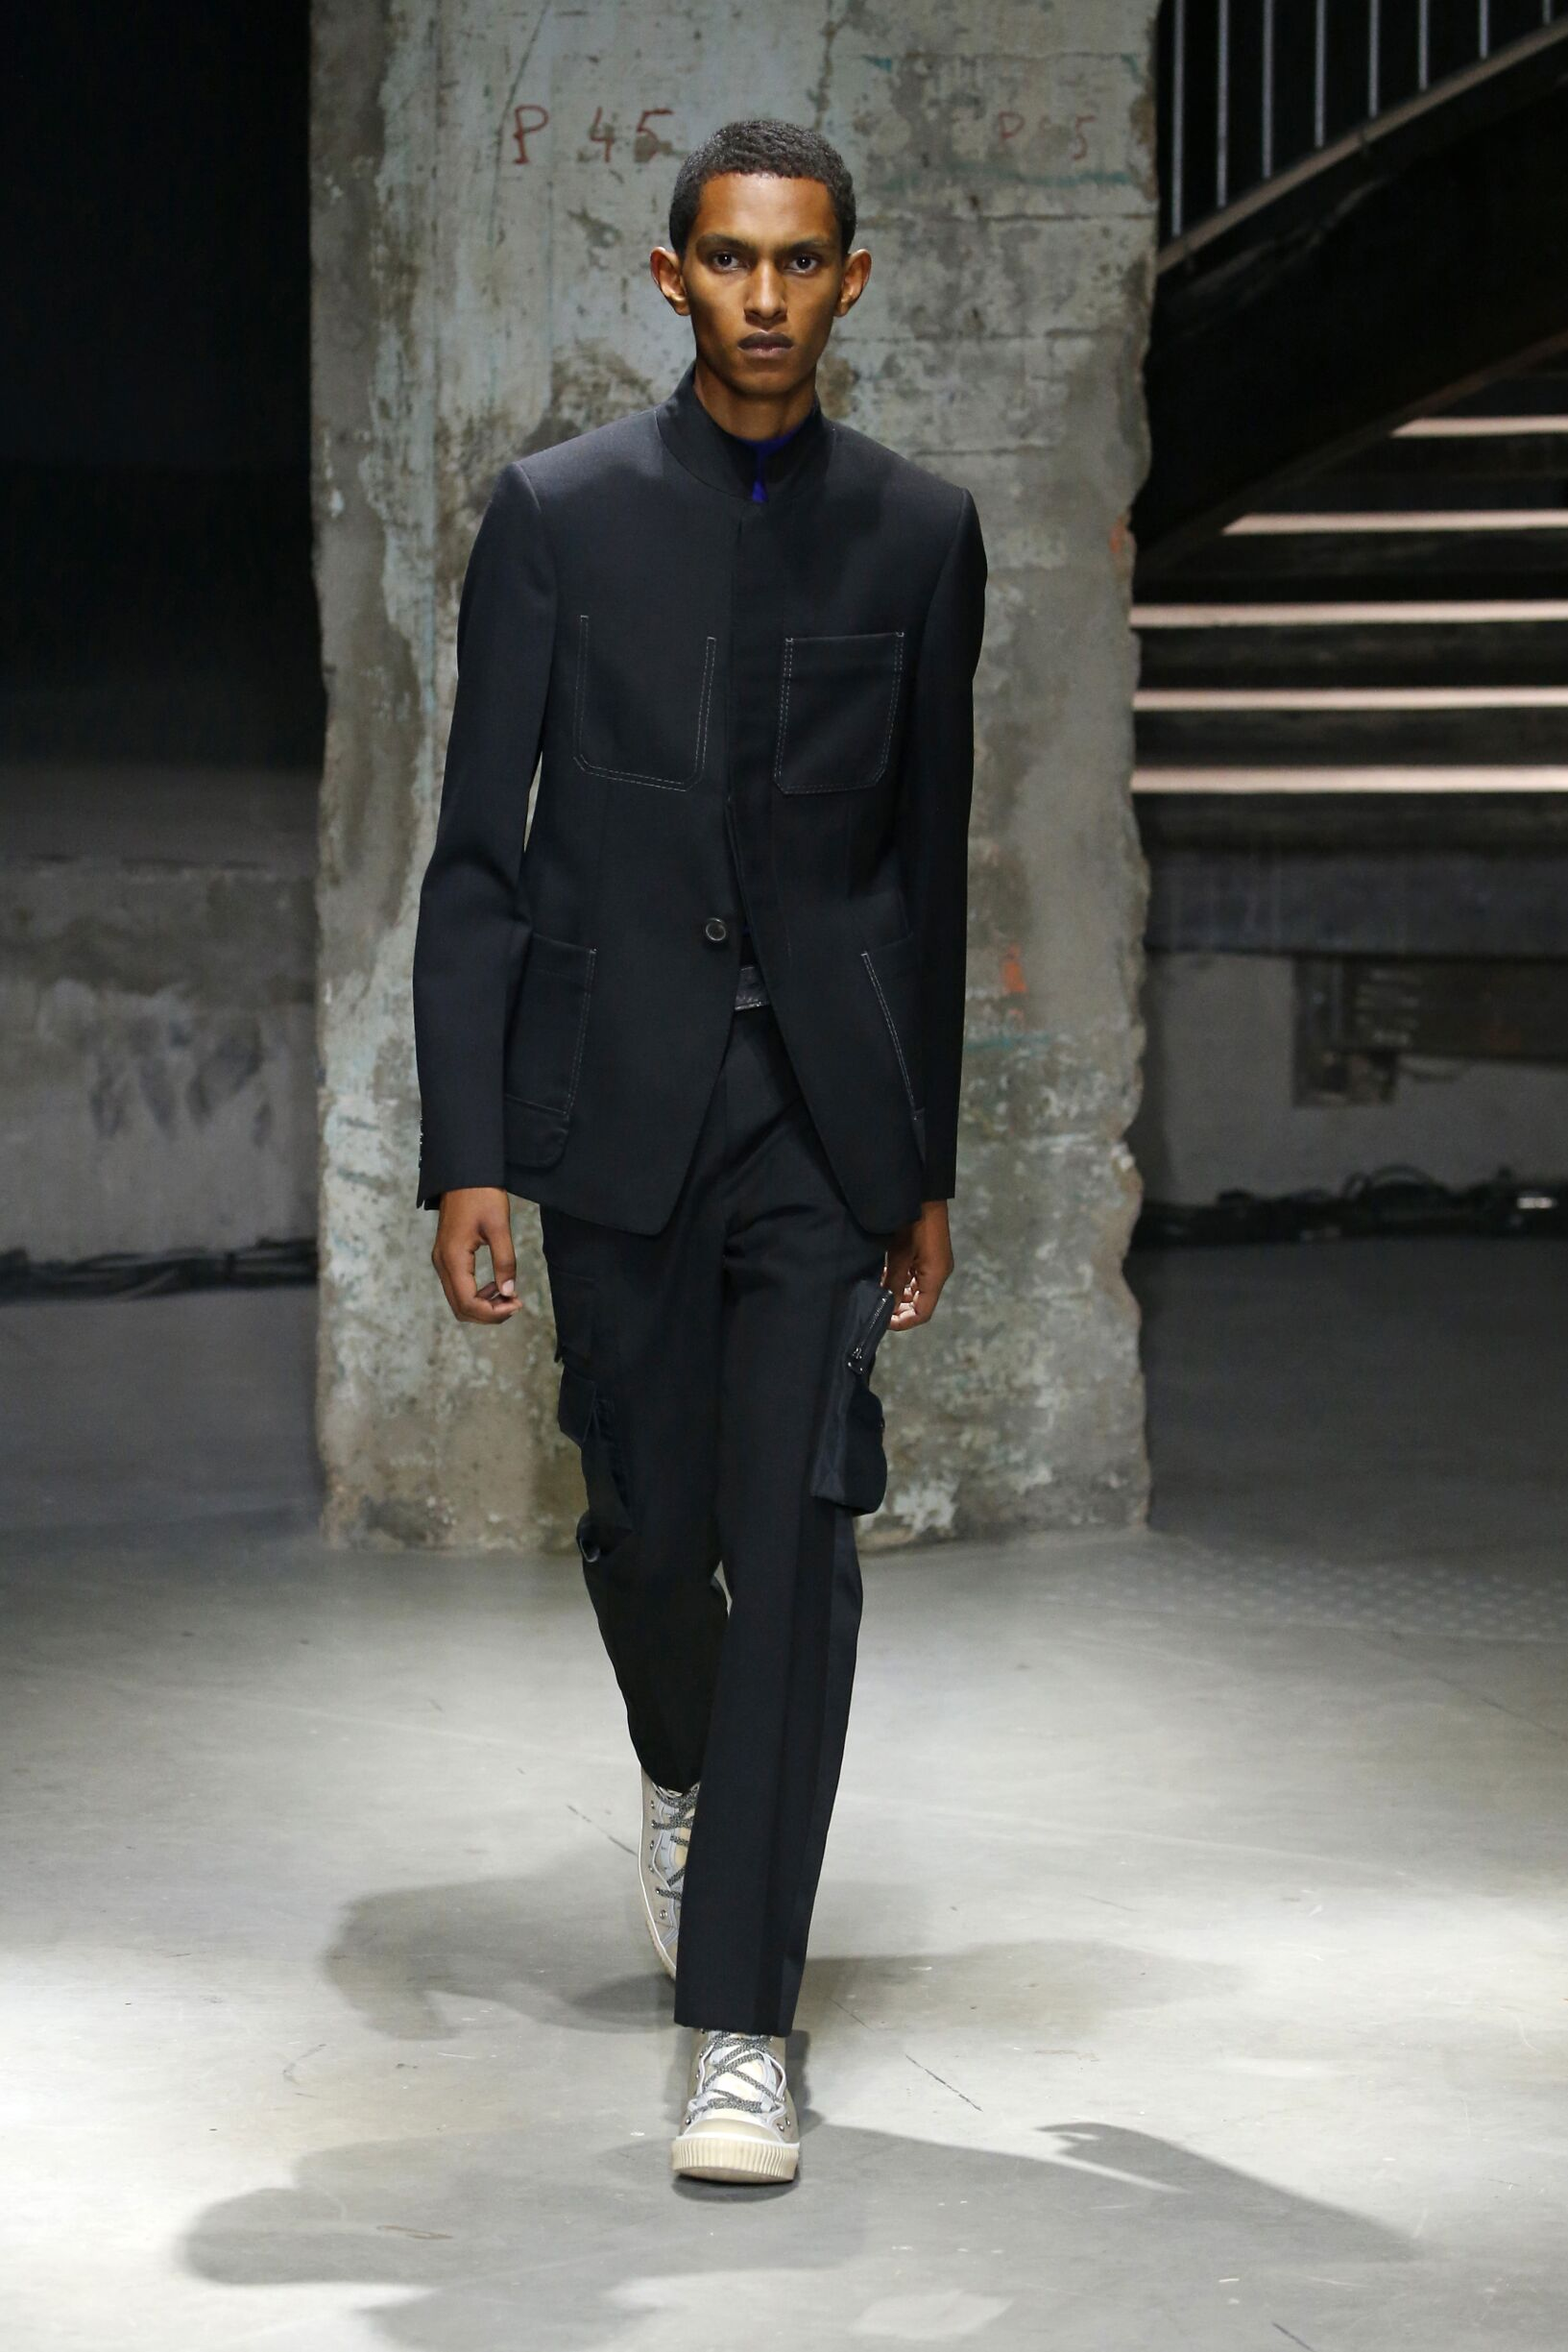 LANVIN SPRING SUMMER 2019 MEN'S COLLECTION | The Skinny Beep